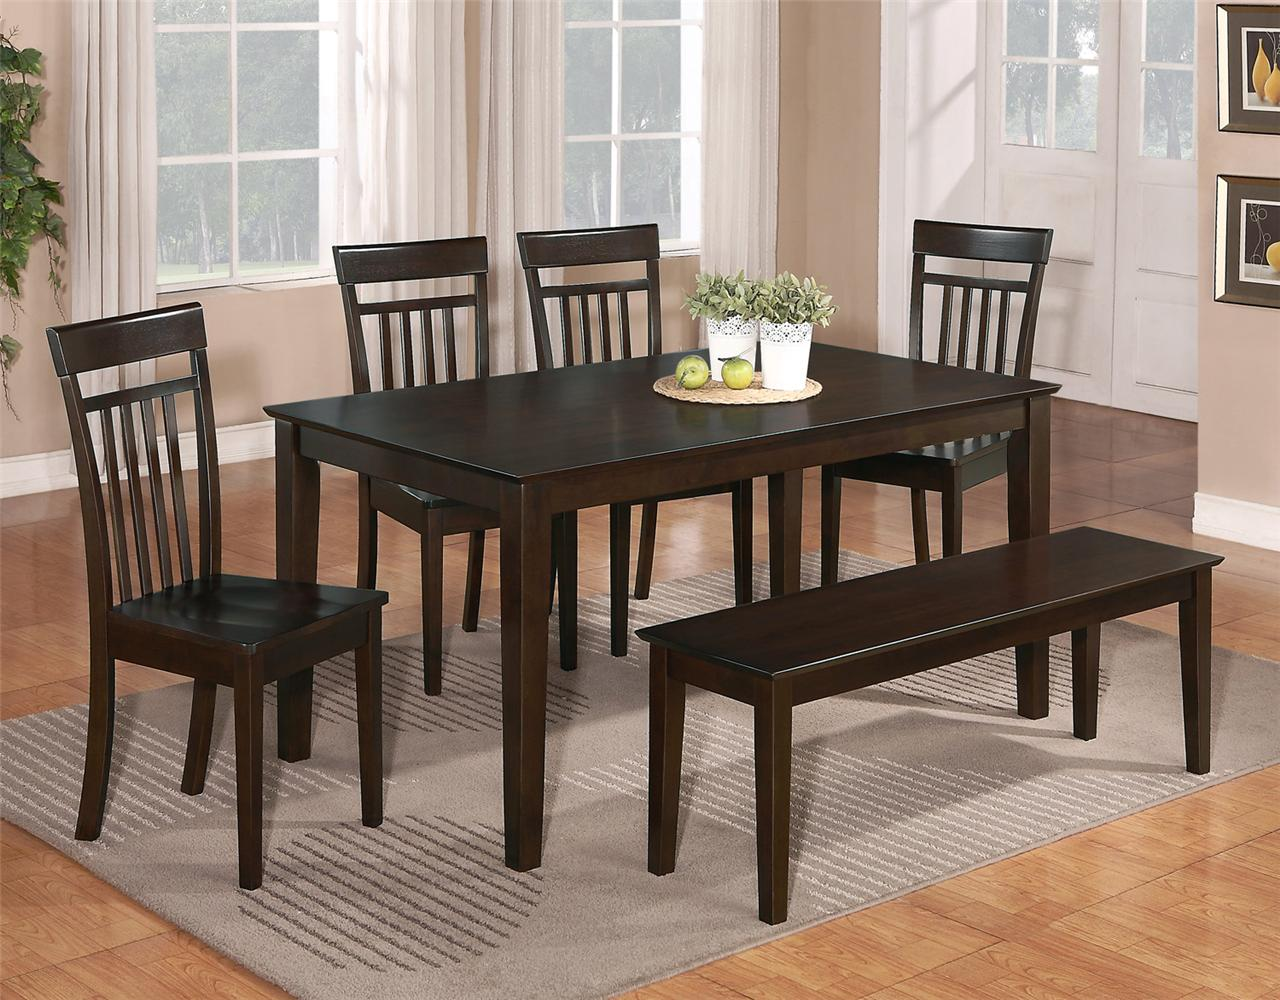 6 pc dinette kitchen dining room set table w 4 wood chair for Kitchen dining table chairs